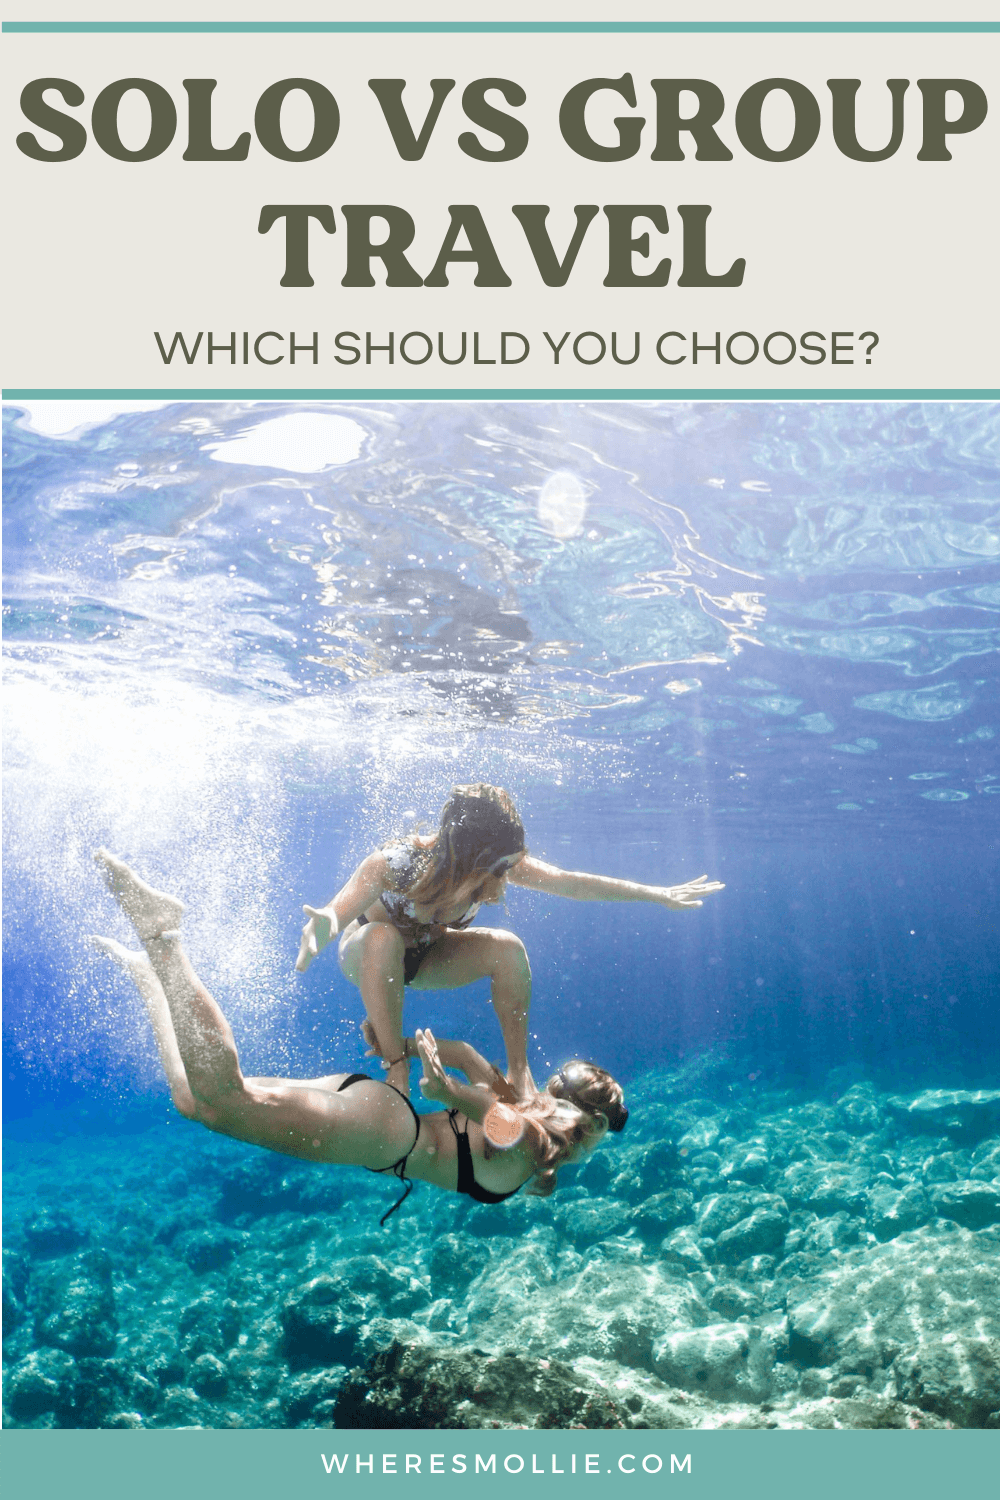 Solo travel vs group travel - which should you do?